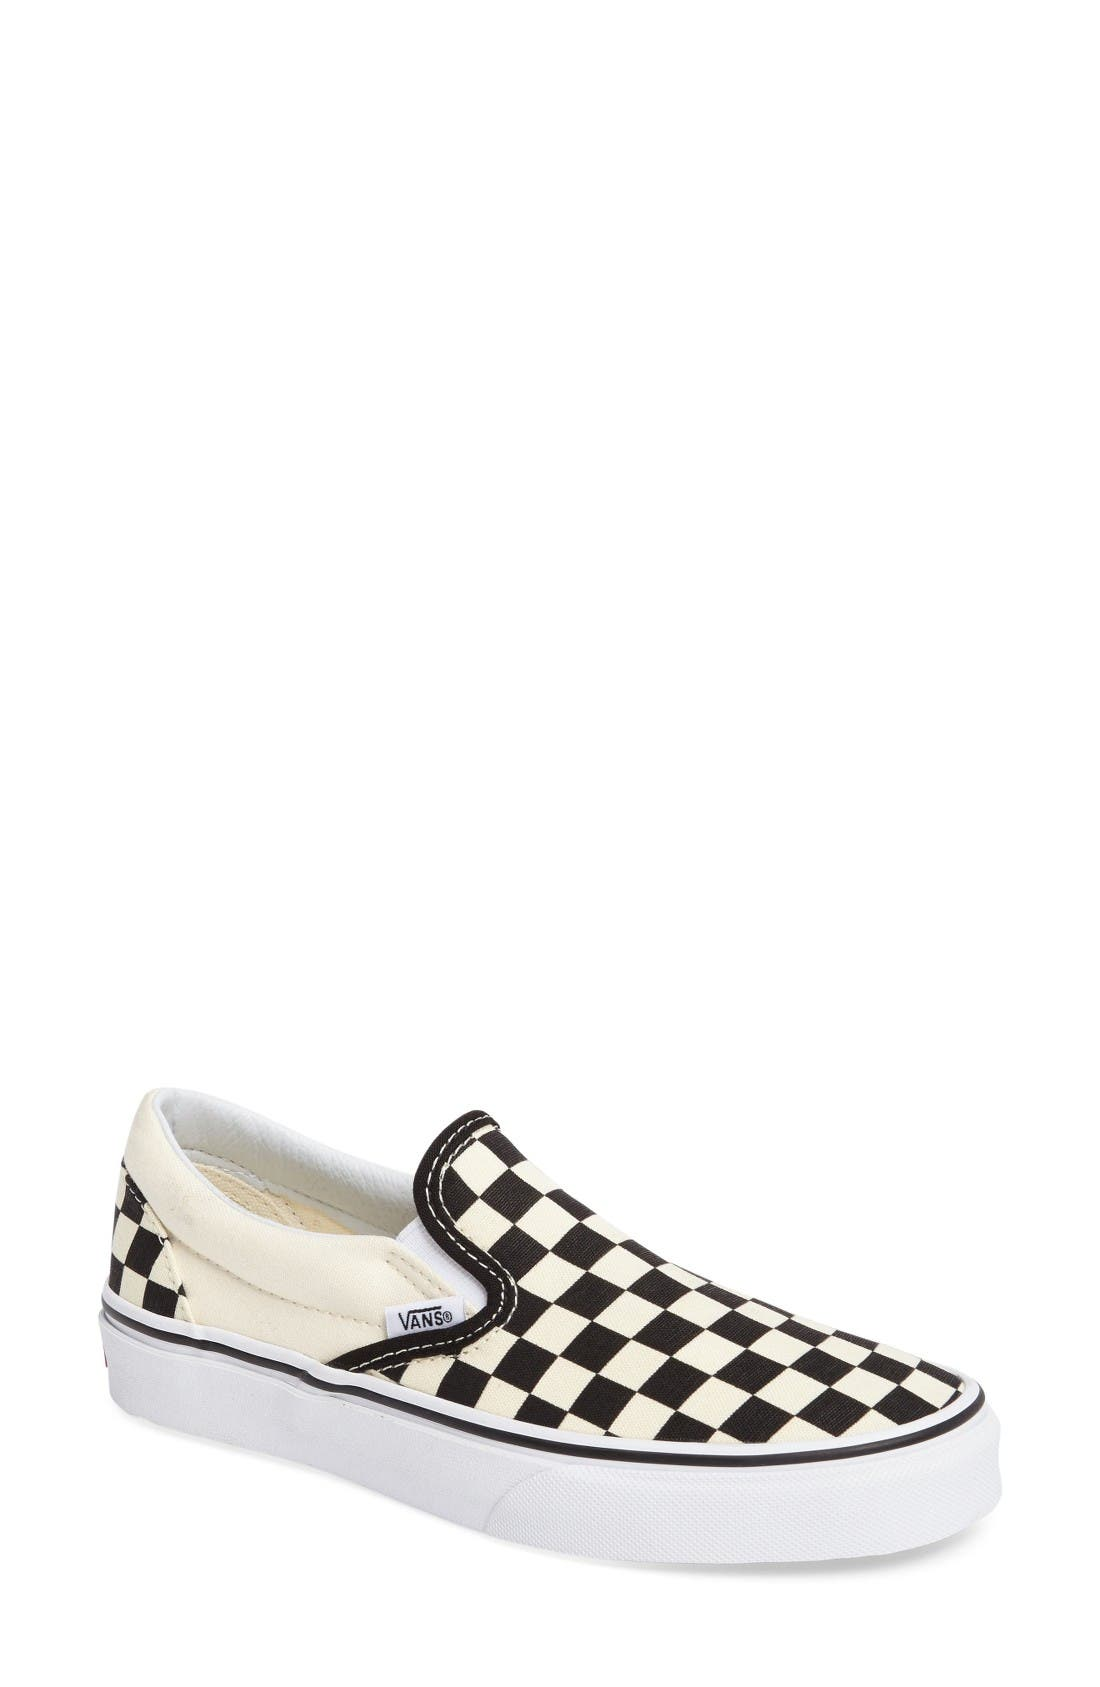 Alternate Image 1 Selected - Vans Classic Sneaker (Women)